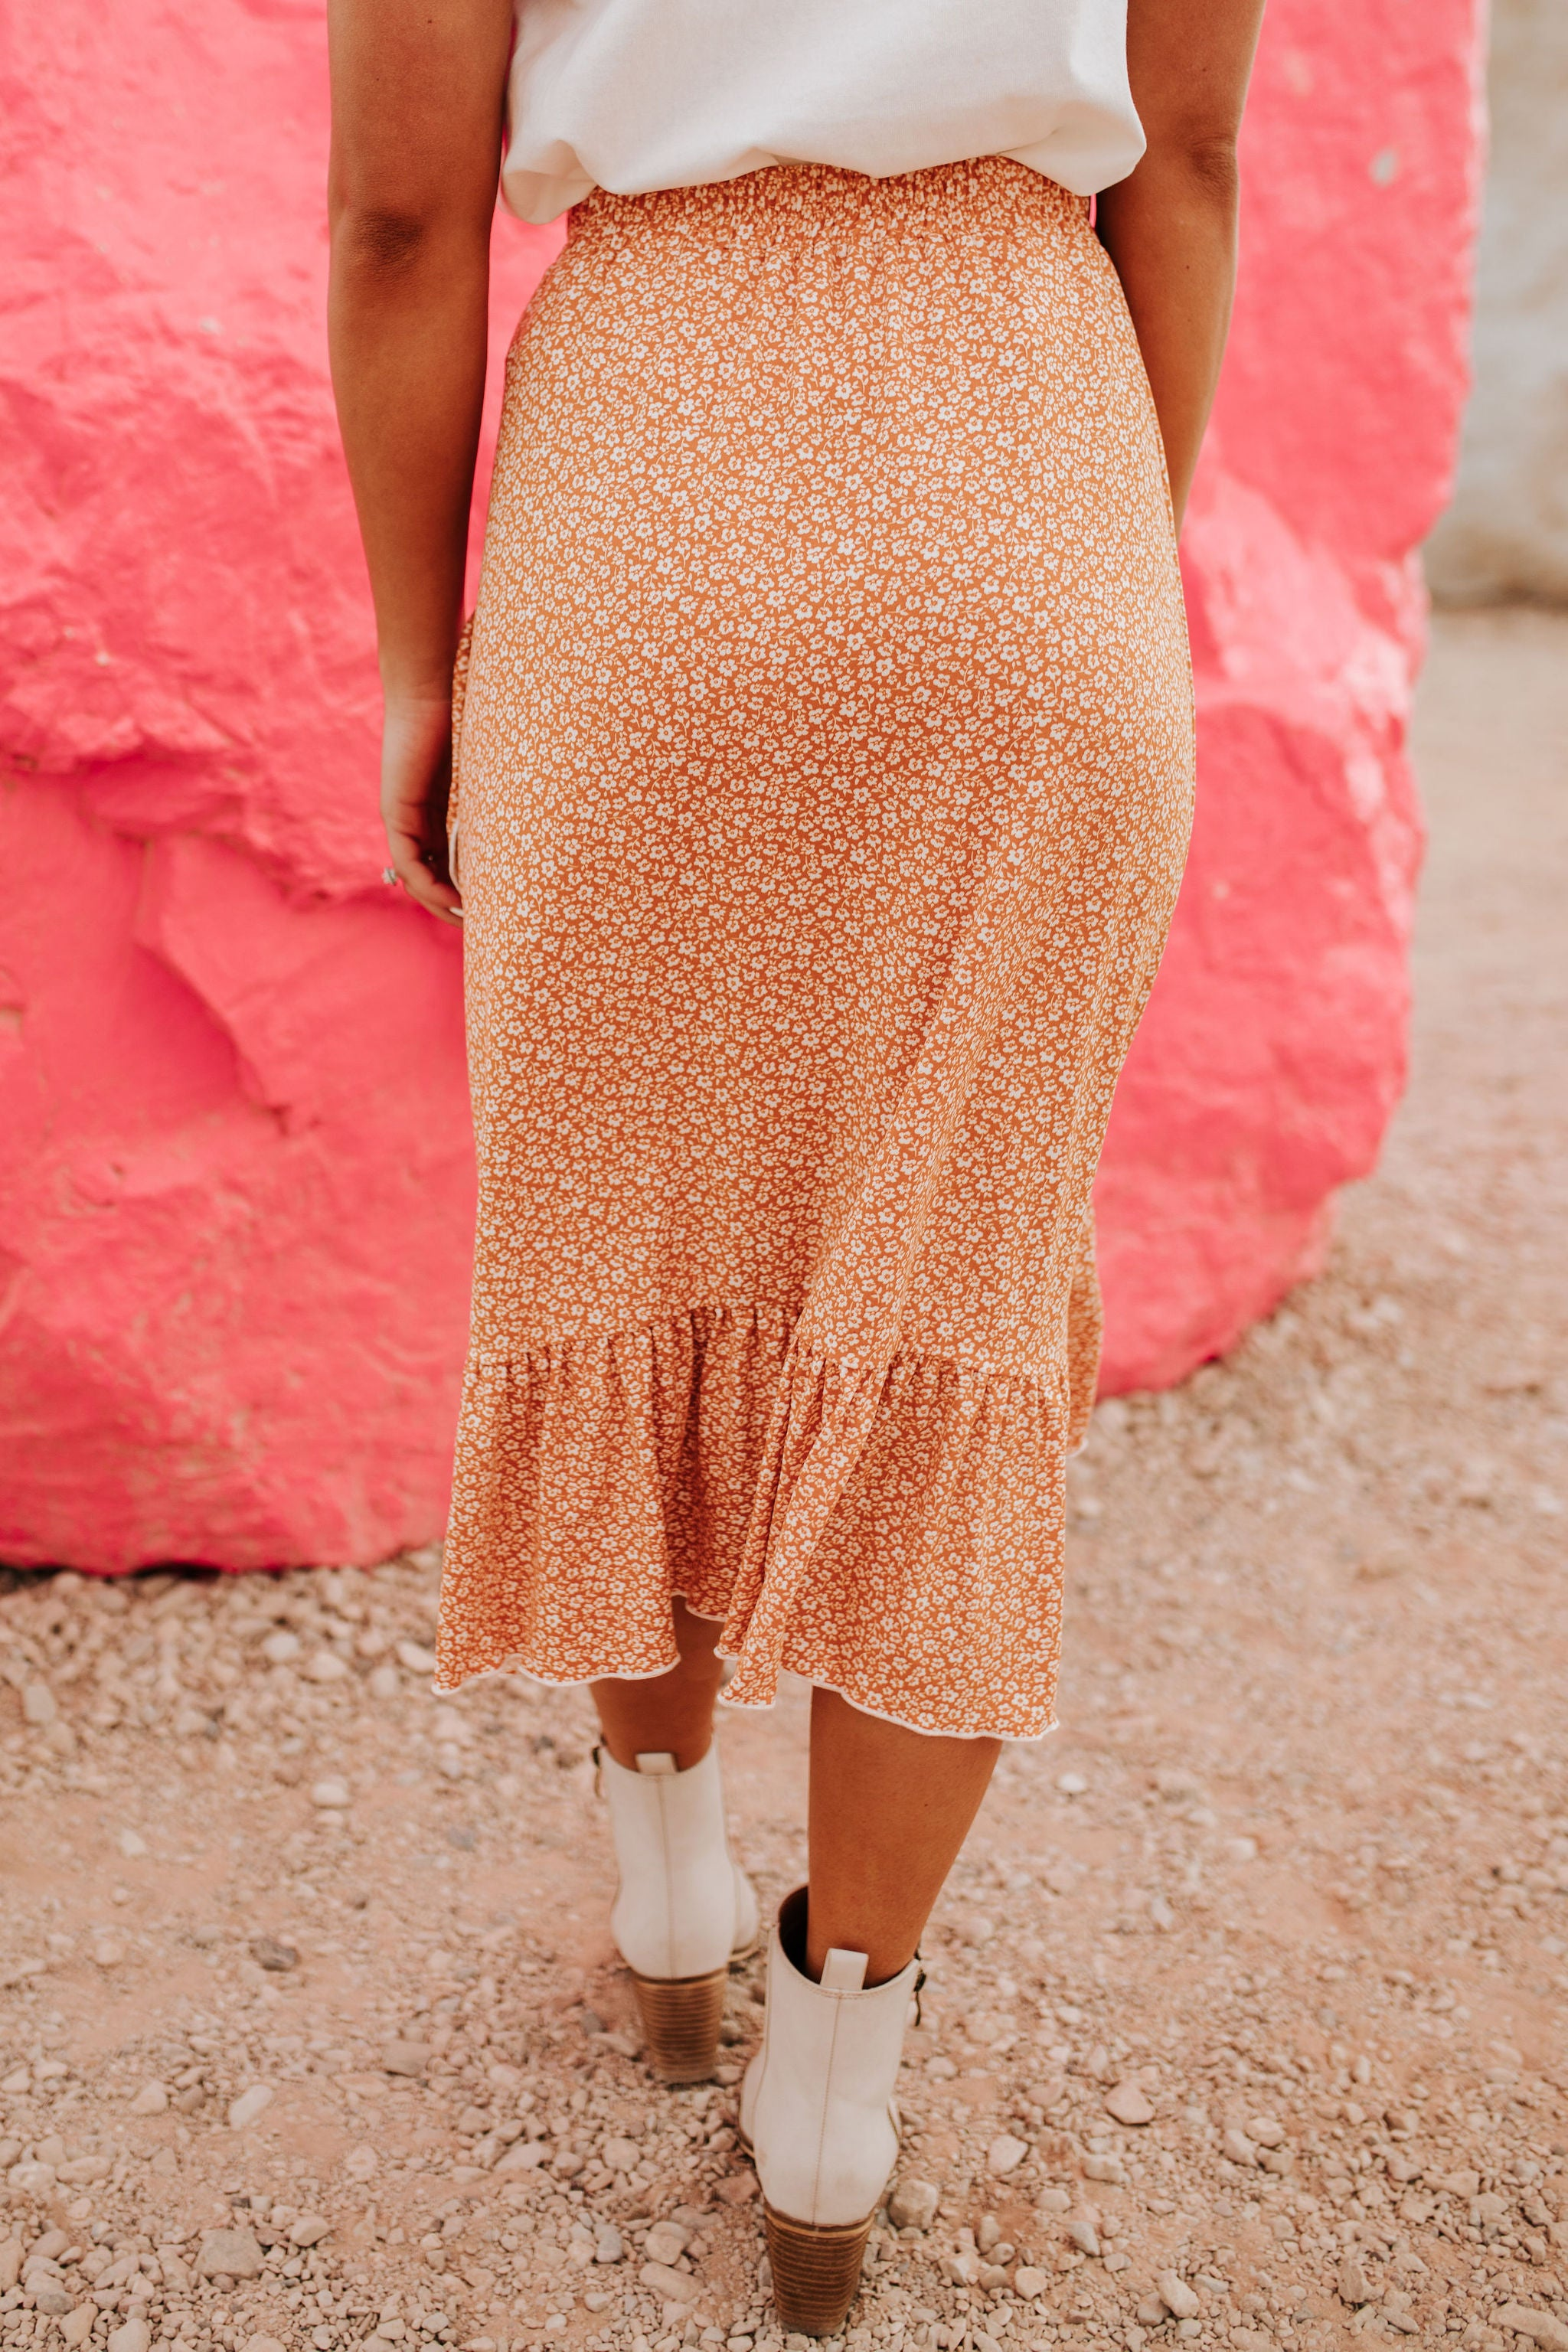 THE SUMMERTIME MAGIC FLORAL SKIRT IN TANGERINE